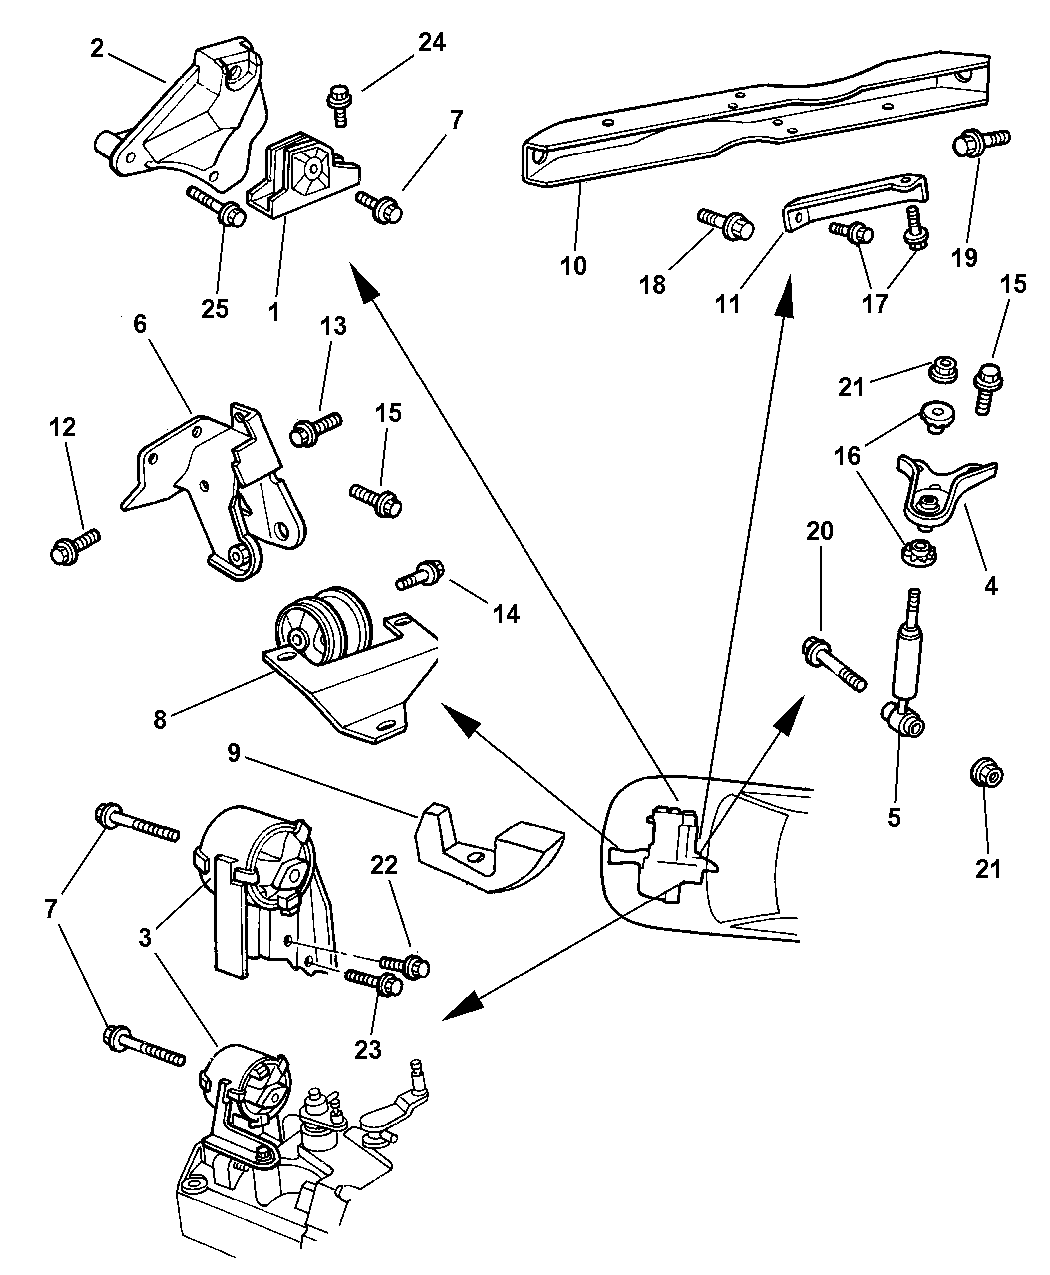 Resource T D Amp S L Amp R Ab C Ee C Be F B F B E C D D A E B A F on Dodge Neon Engine Mount Diagram